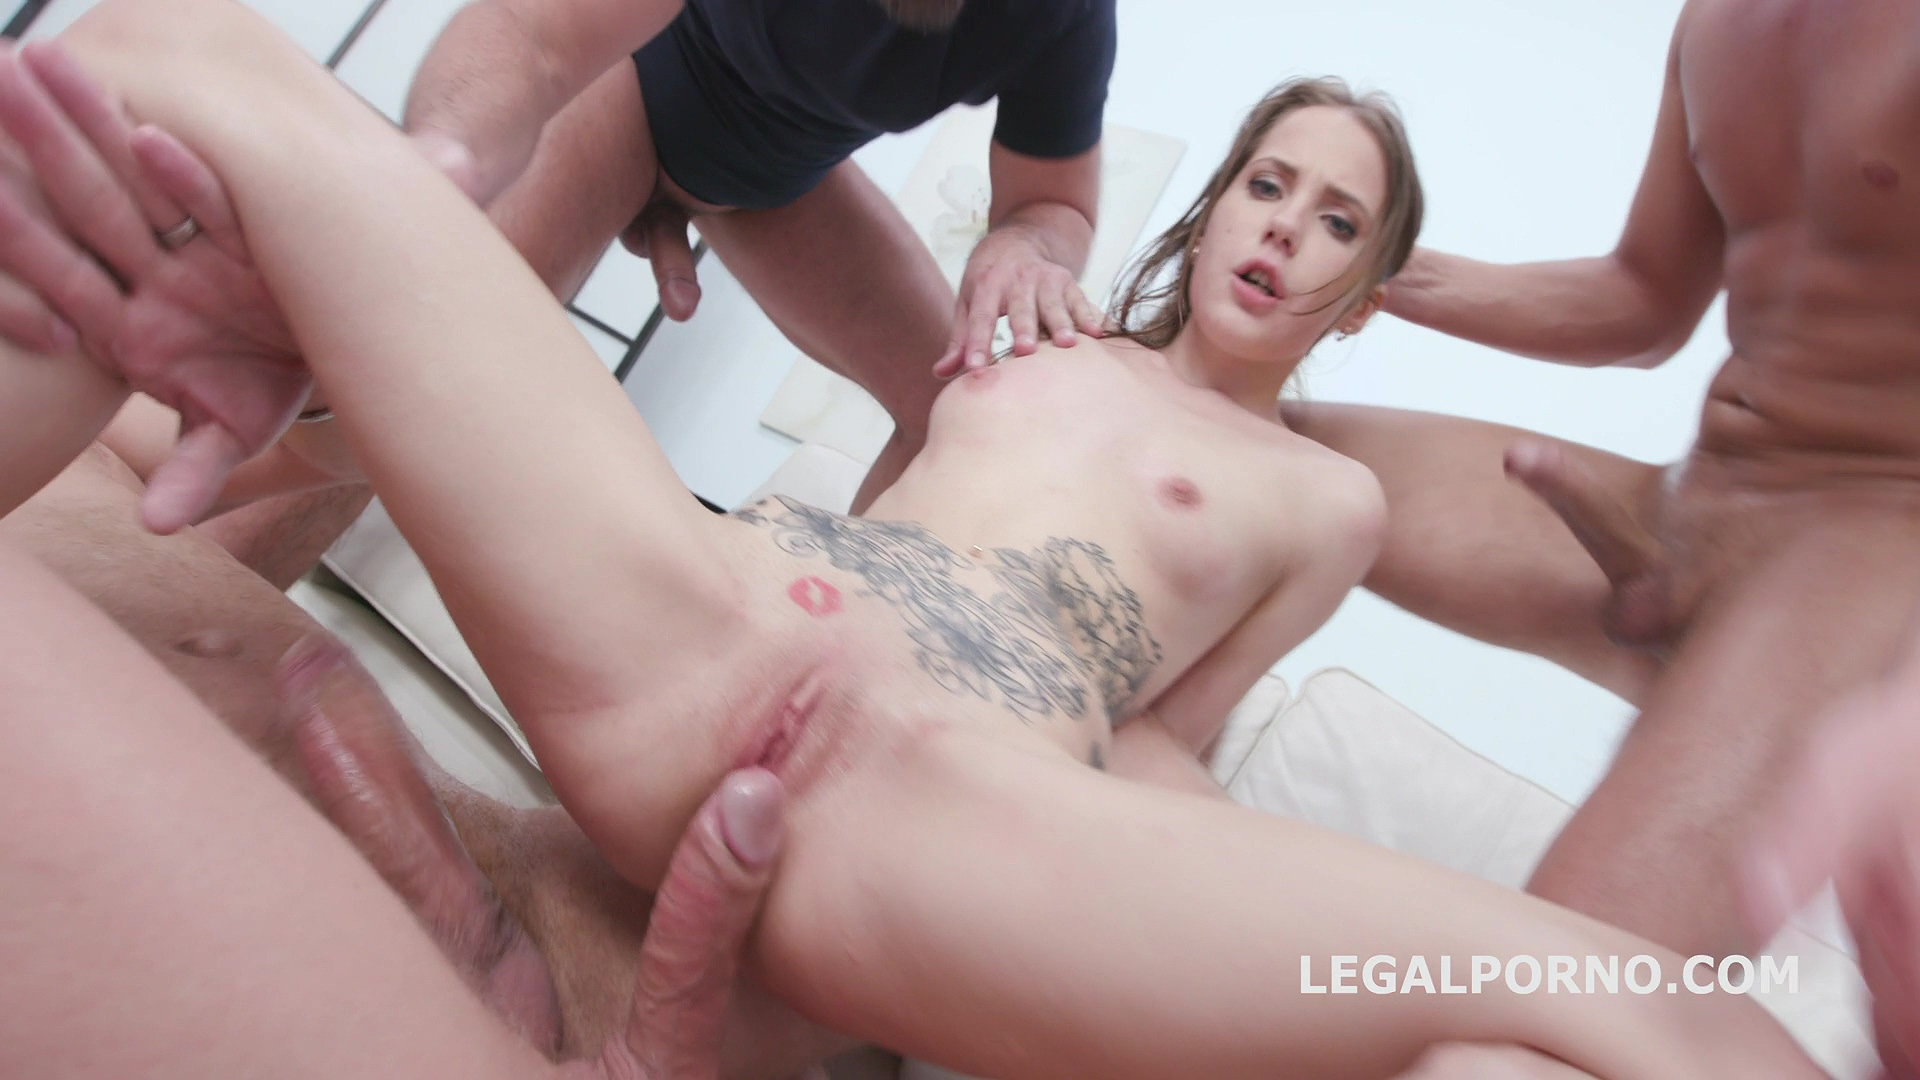 dap_destination_stasia_si_first_time_dap_with_balls_deep_anal_gapes_and_creampie_swallow_gio1393_fhd_mp4_20200317_120501_543.jpg